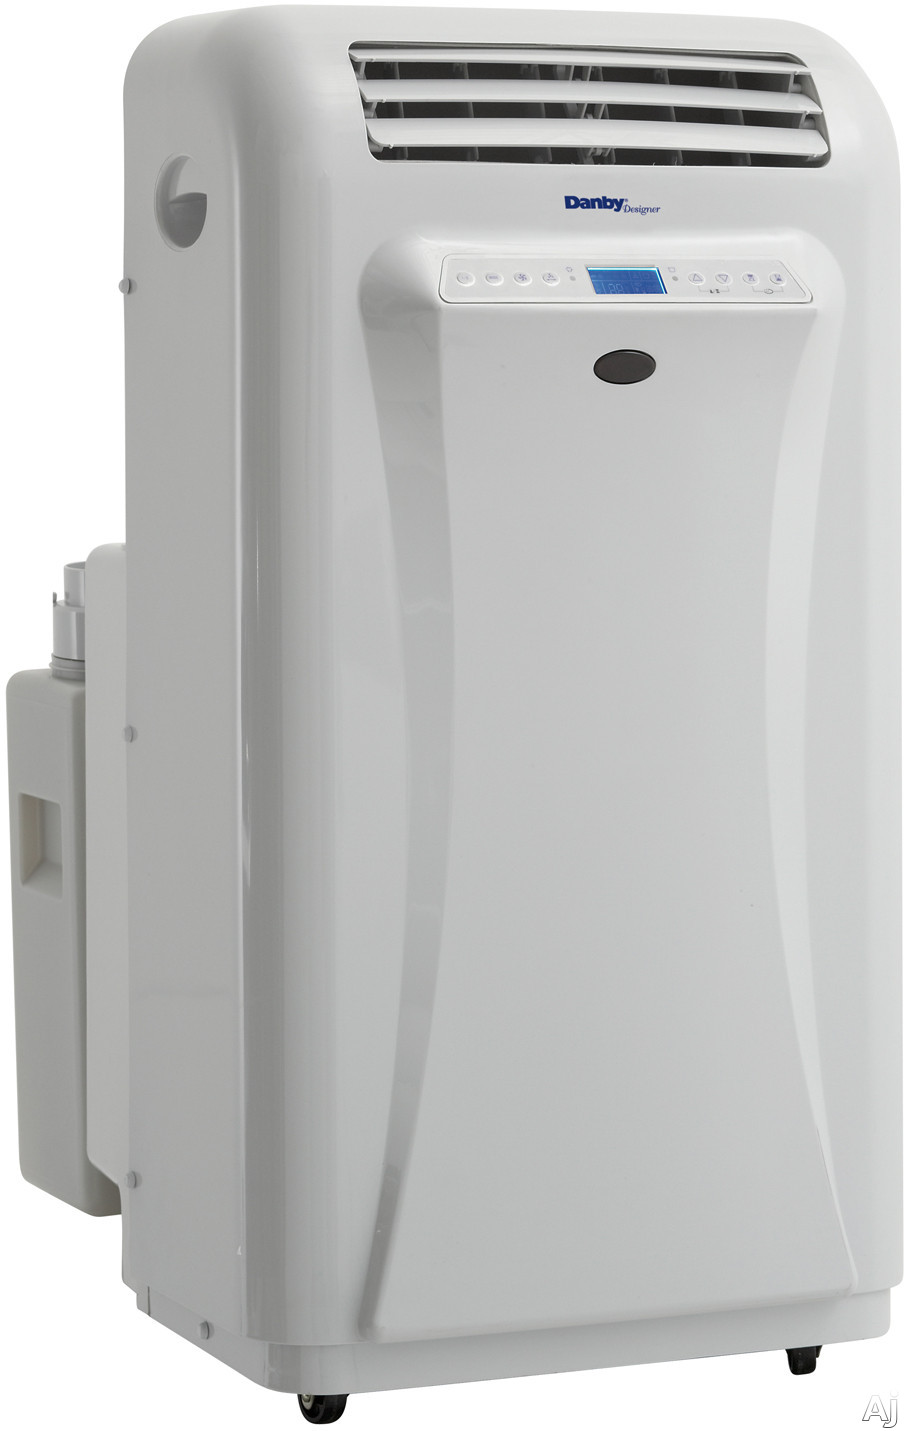 A small portable air conditioner is extremely convenient for room use, with many mini AC units to choose from.